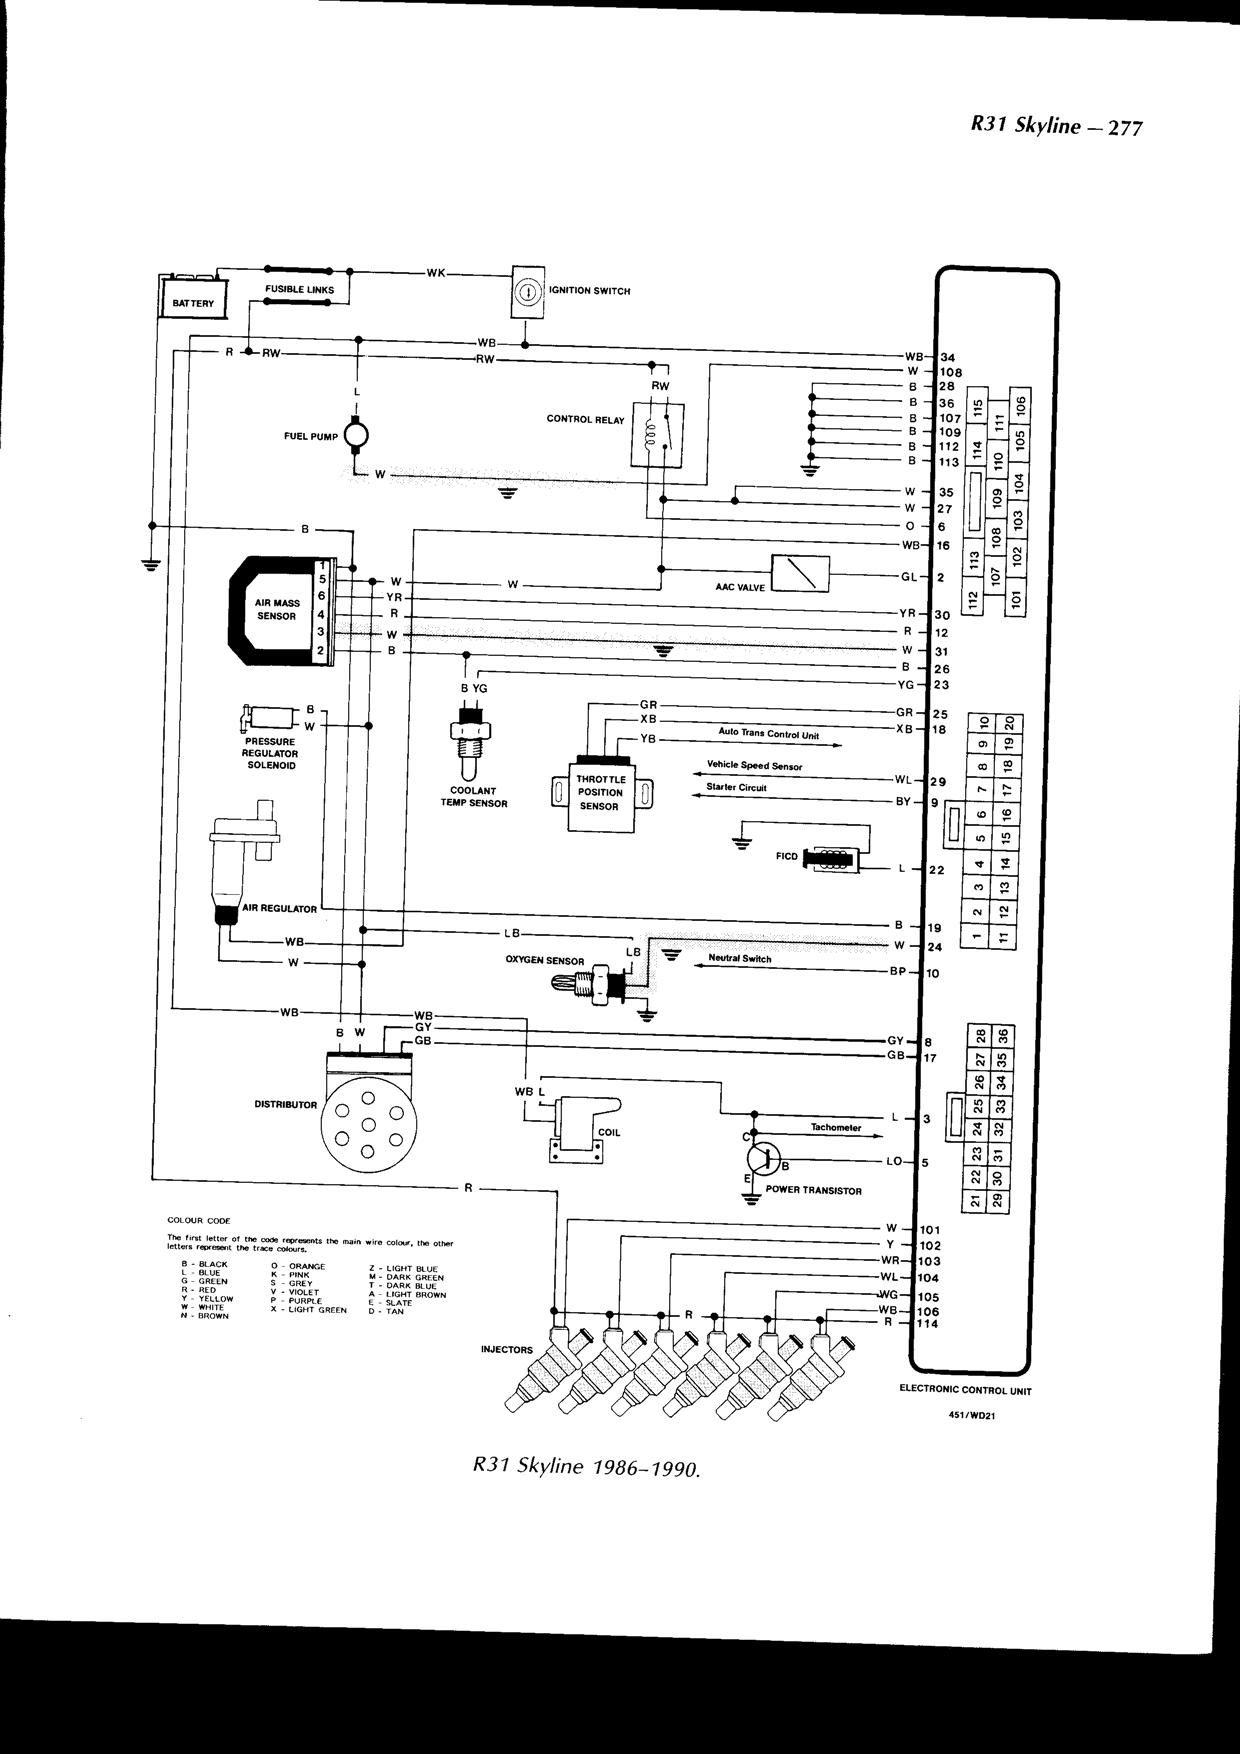 Nissan 1400 electrical    wiring       diagram      Nissan   Electrical circuit    diagram     Electrical    wiring